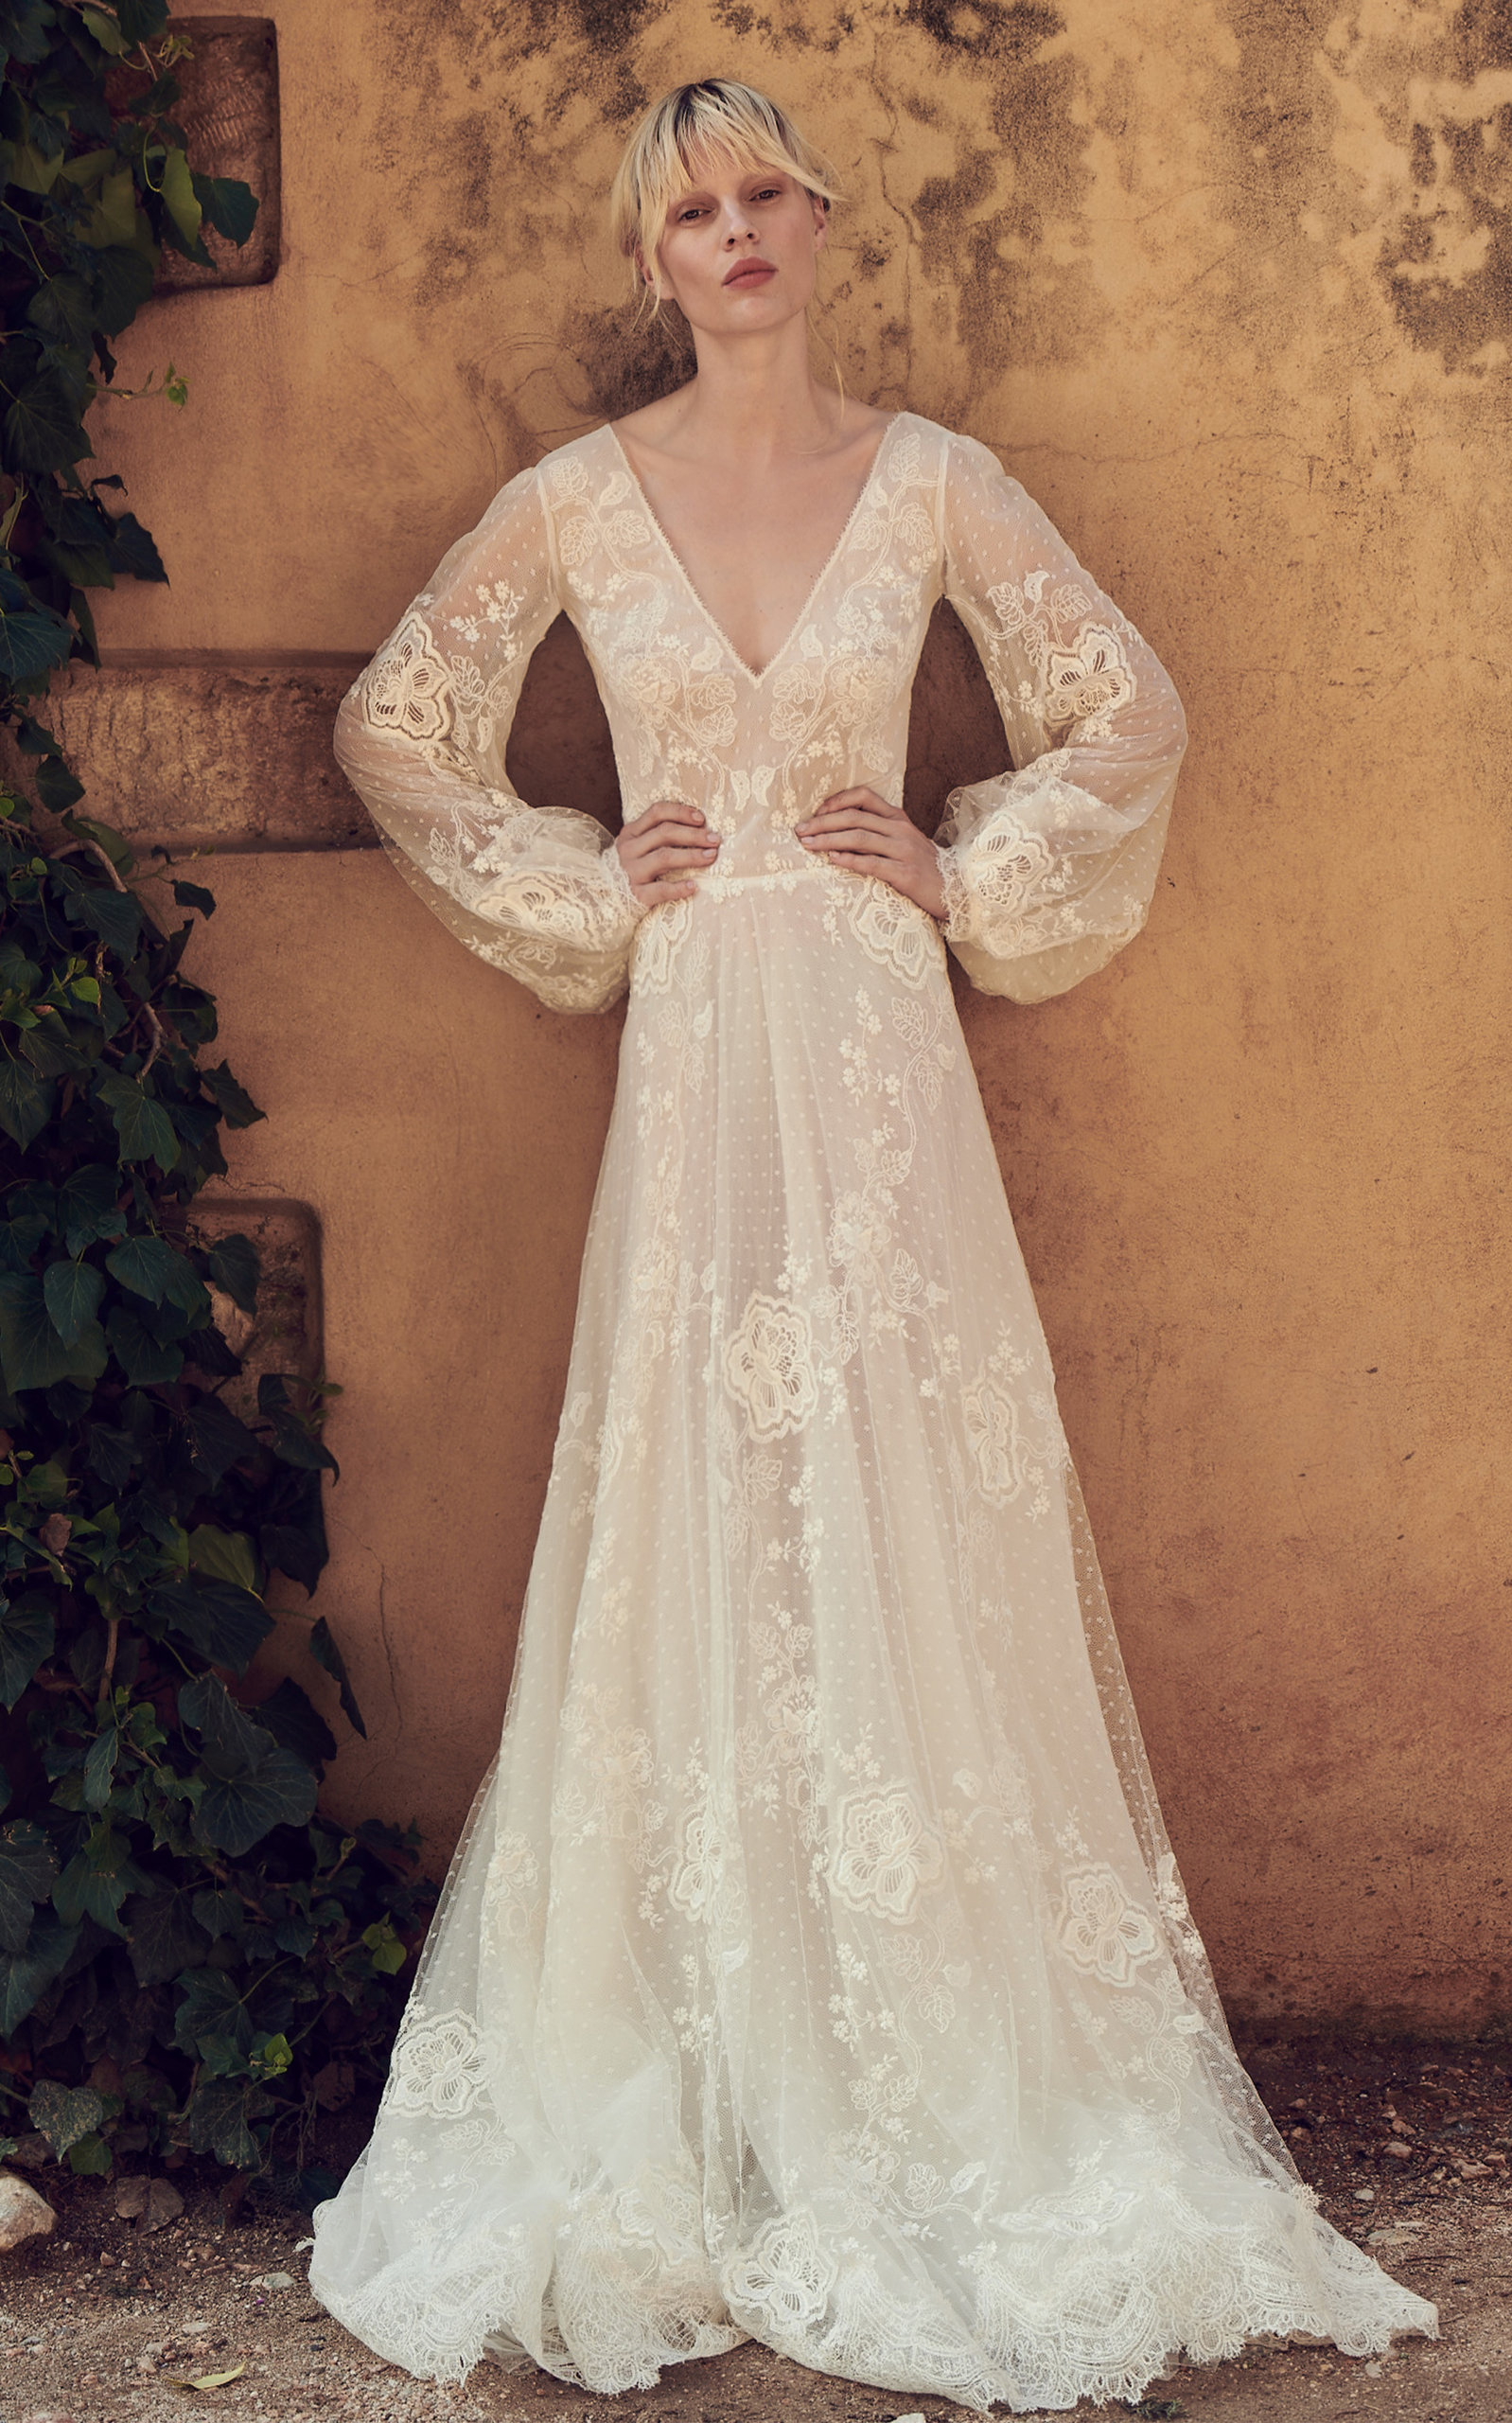 COSTARELLOS BRIDAL Embroidered Lace Ethereal Gown in White